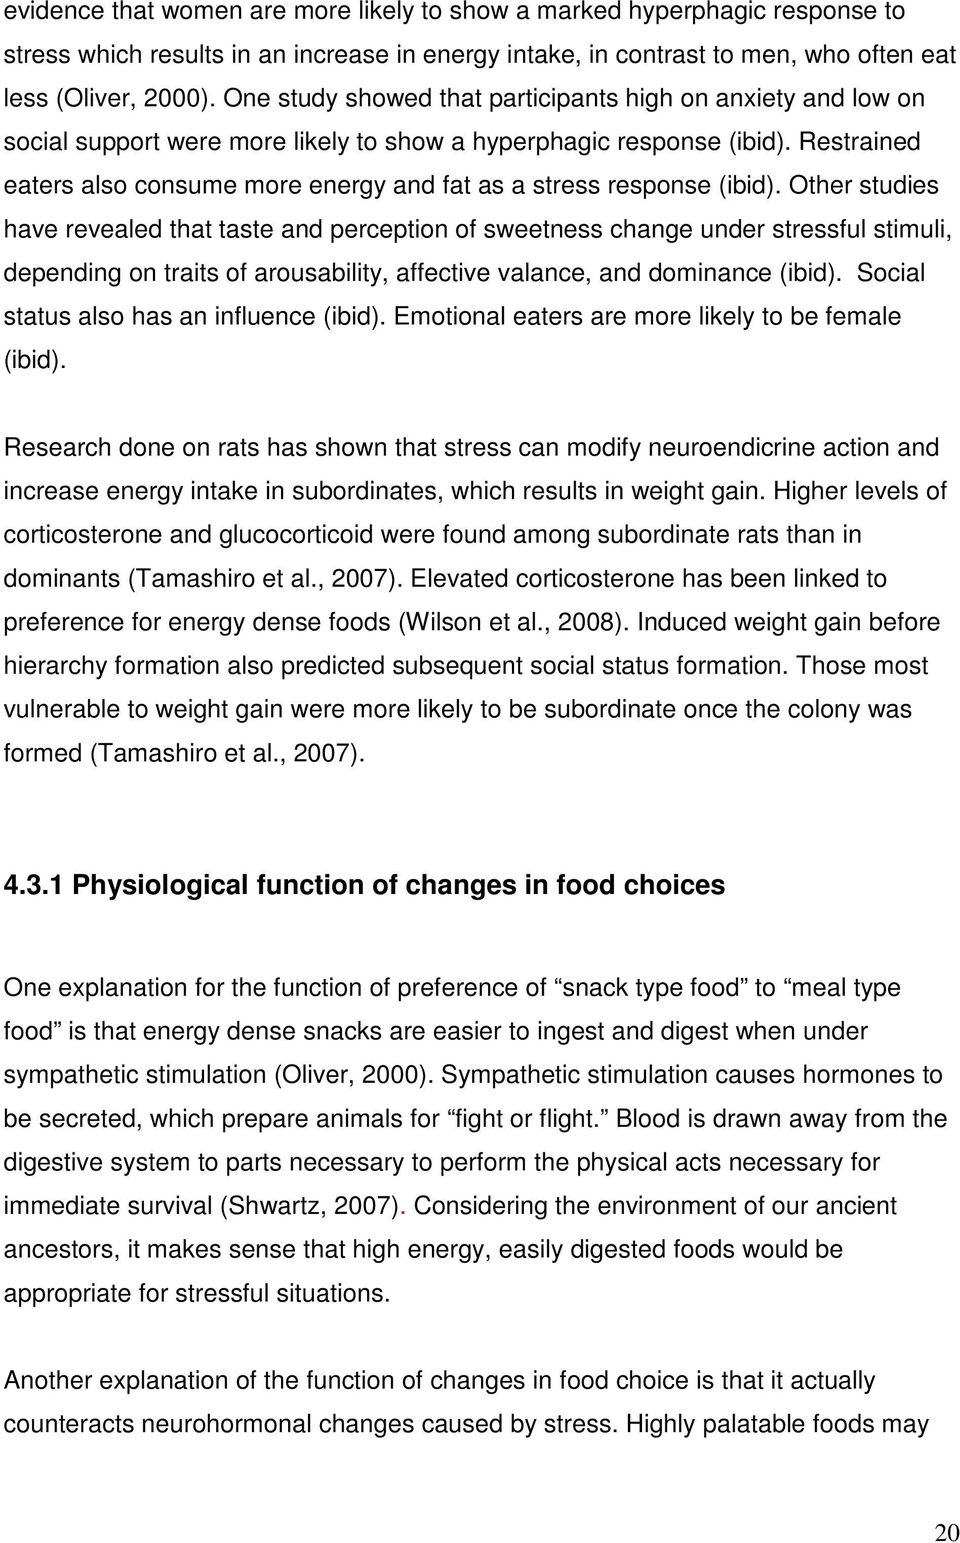 Restrained eaters also consume more energy and fat as a stress response (ibid).